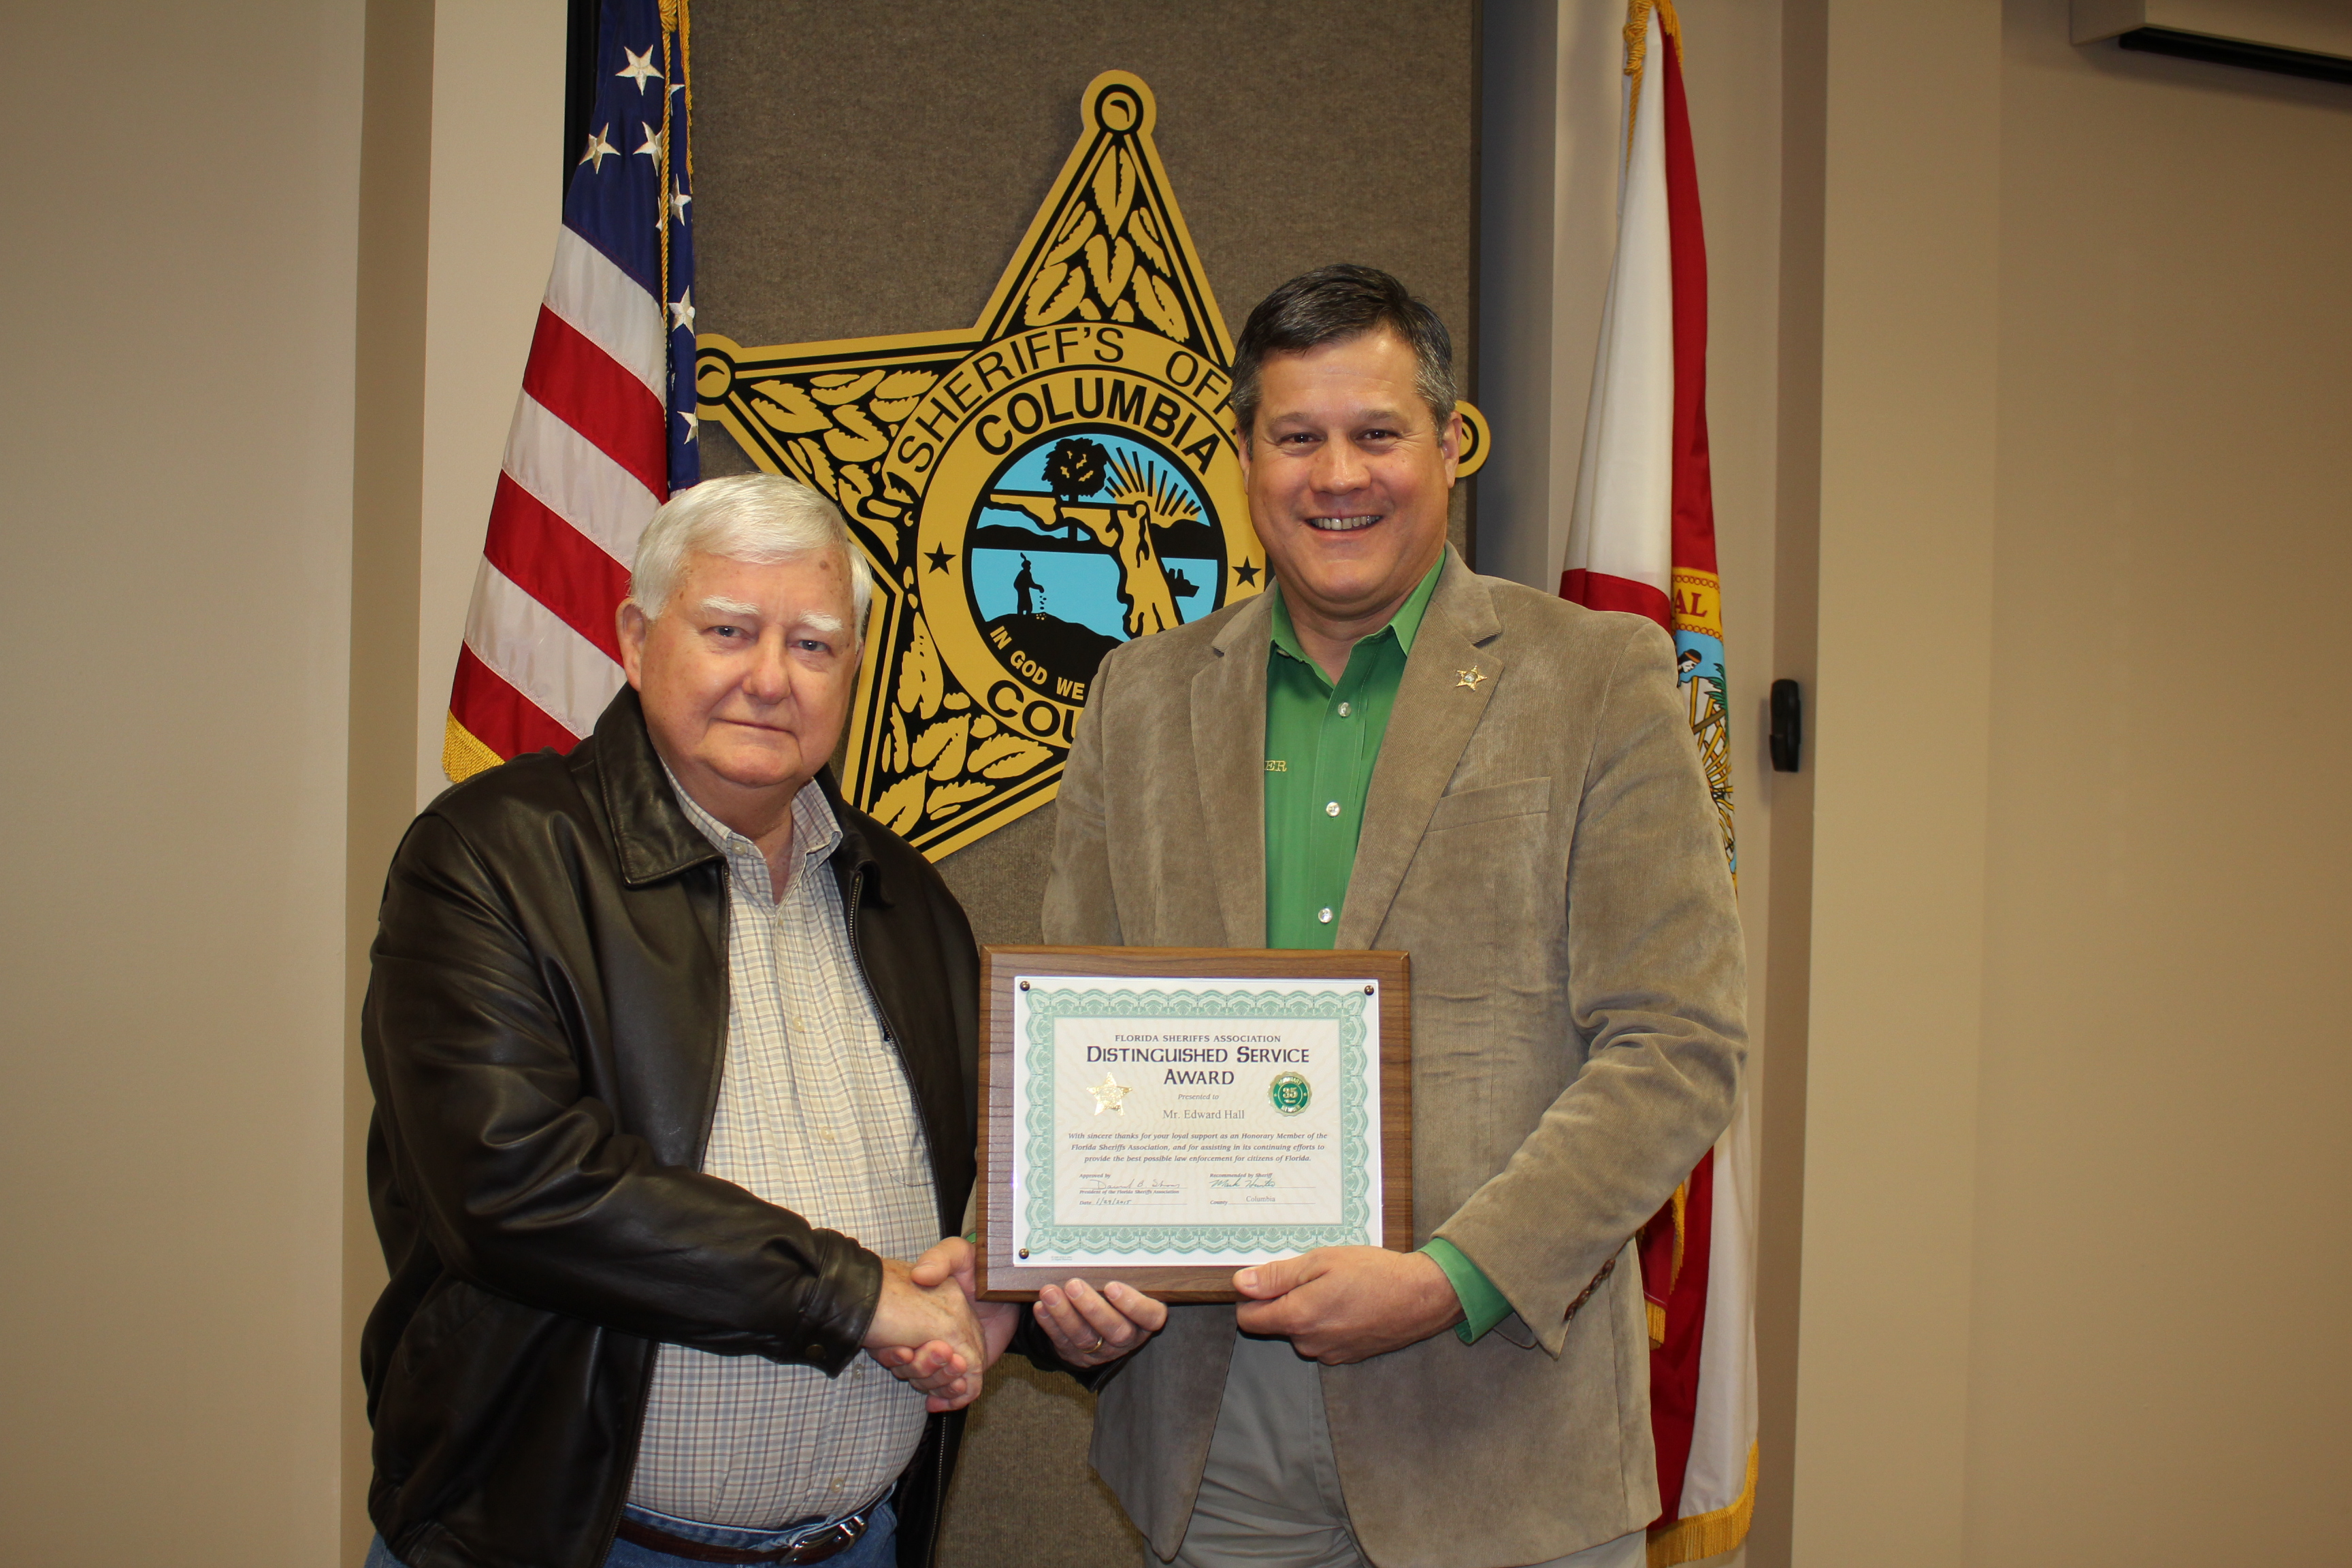 Mr. Edward Hall and Sheriff Mark Hunter